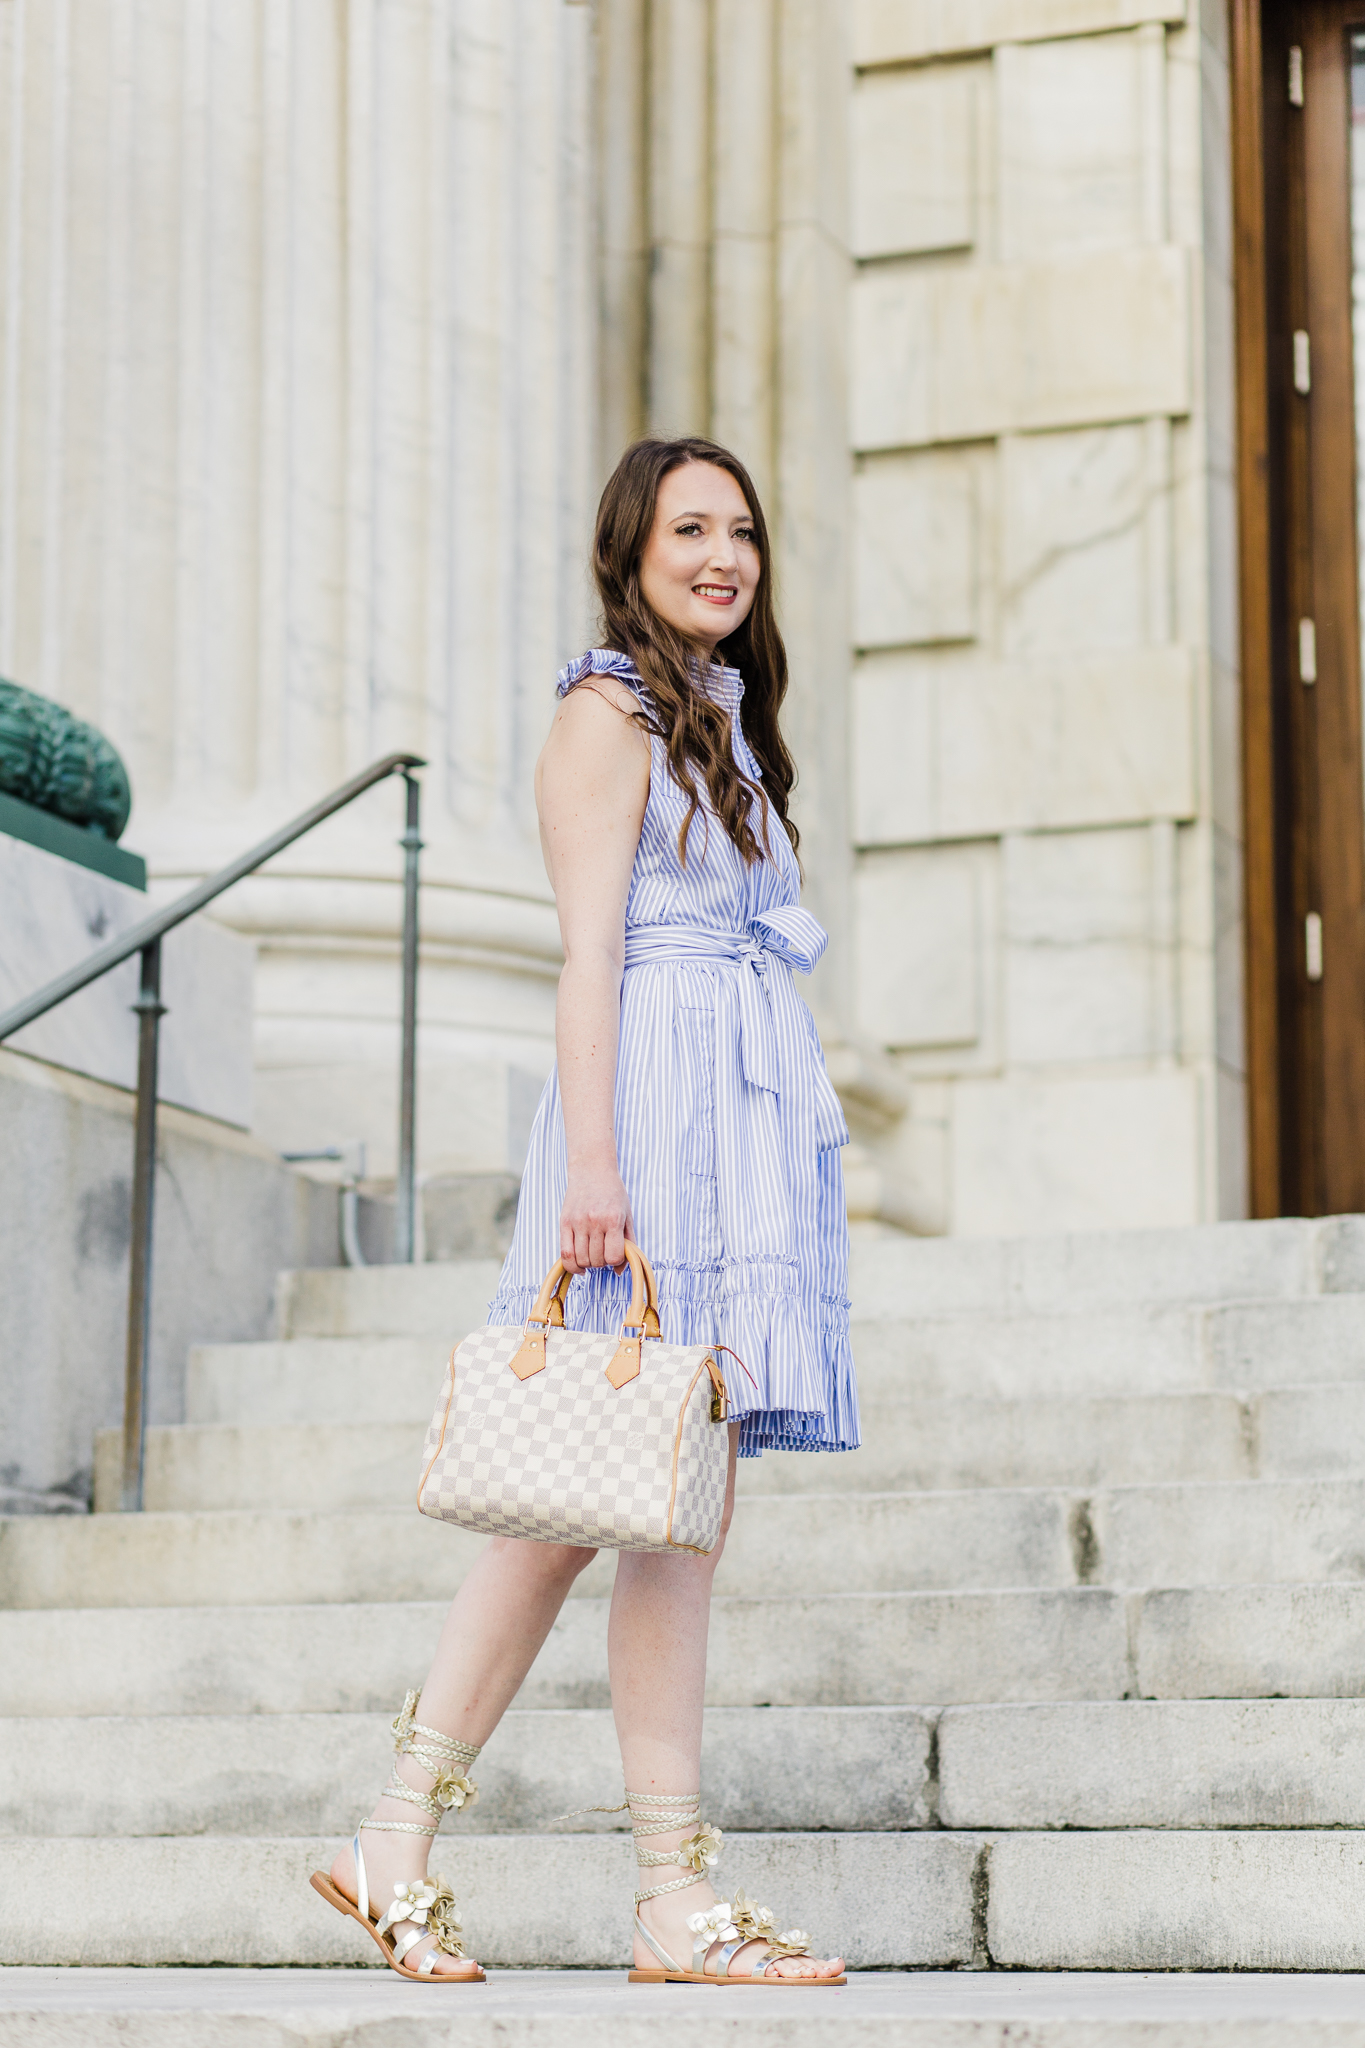 FUN AND FLIRTY PLEATED PINSTRIPE DRESS, Alexis briley dress, Louis Vuitton speedy 25 damier azur, Tory Burch blossom gladiators, pinstripe dress, summer dress, summer fashion, blue and white striped dress, alexis dress,